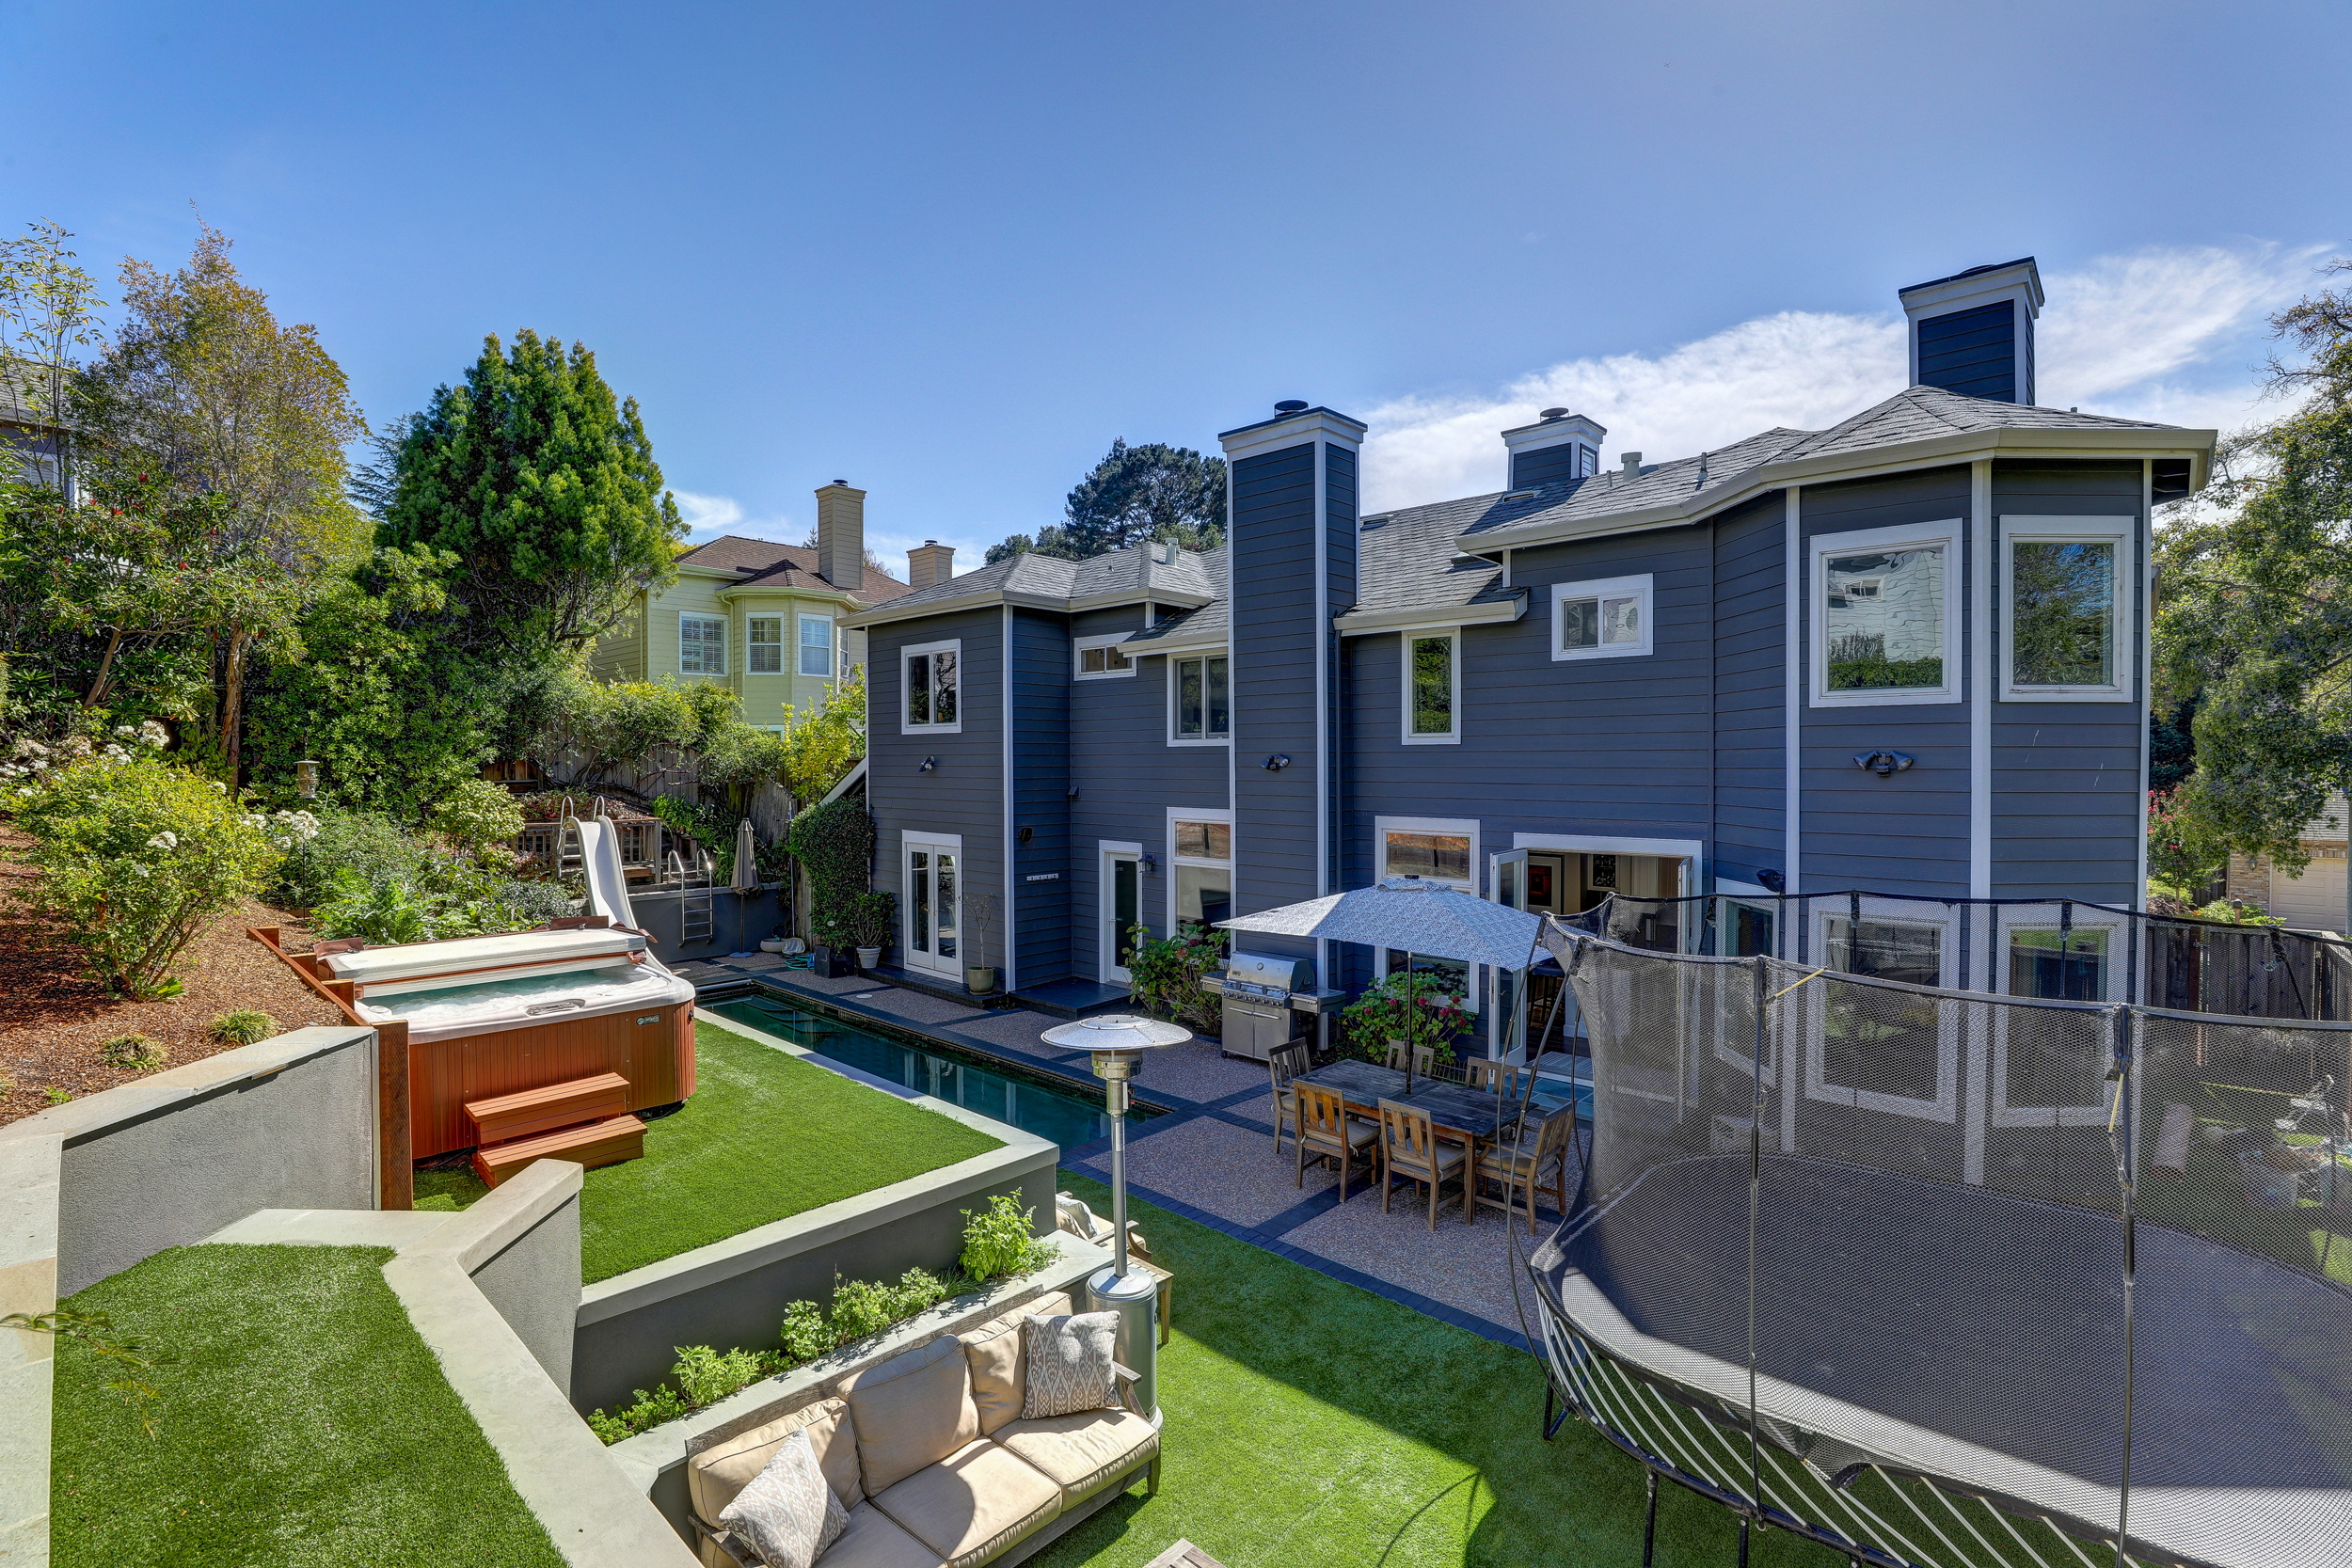 8Parkside 77 - Own Marin with Compass - Marin County Best Realtor.jpg